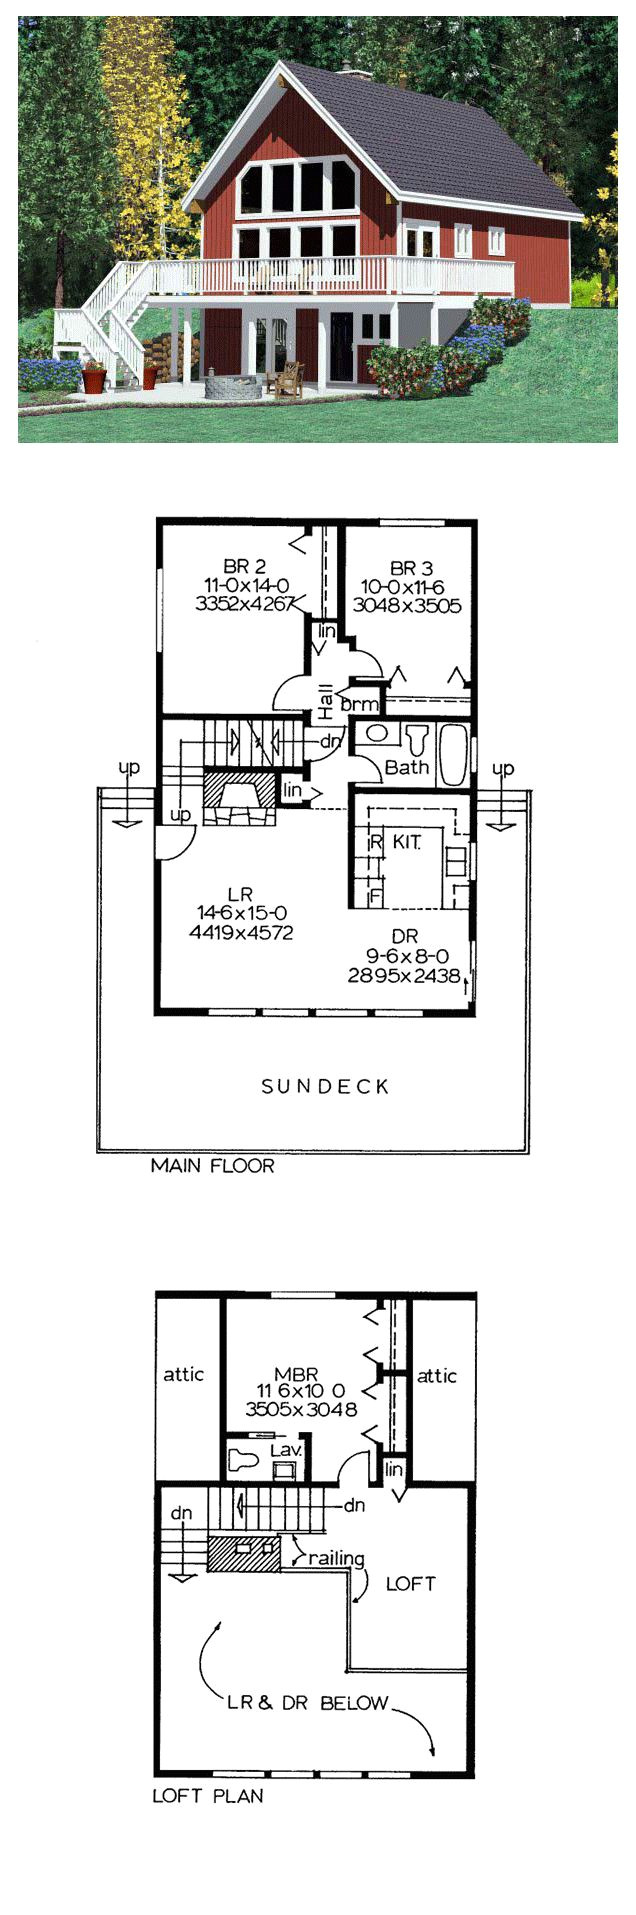 hillside house plan 90822 total living area 1263 sq ft 3 bedrooms 1 5 bathrooms hillsidehome houseplans